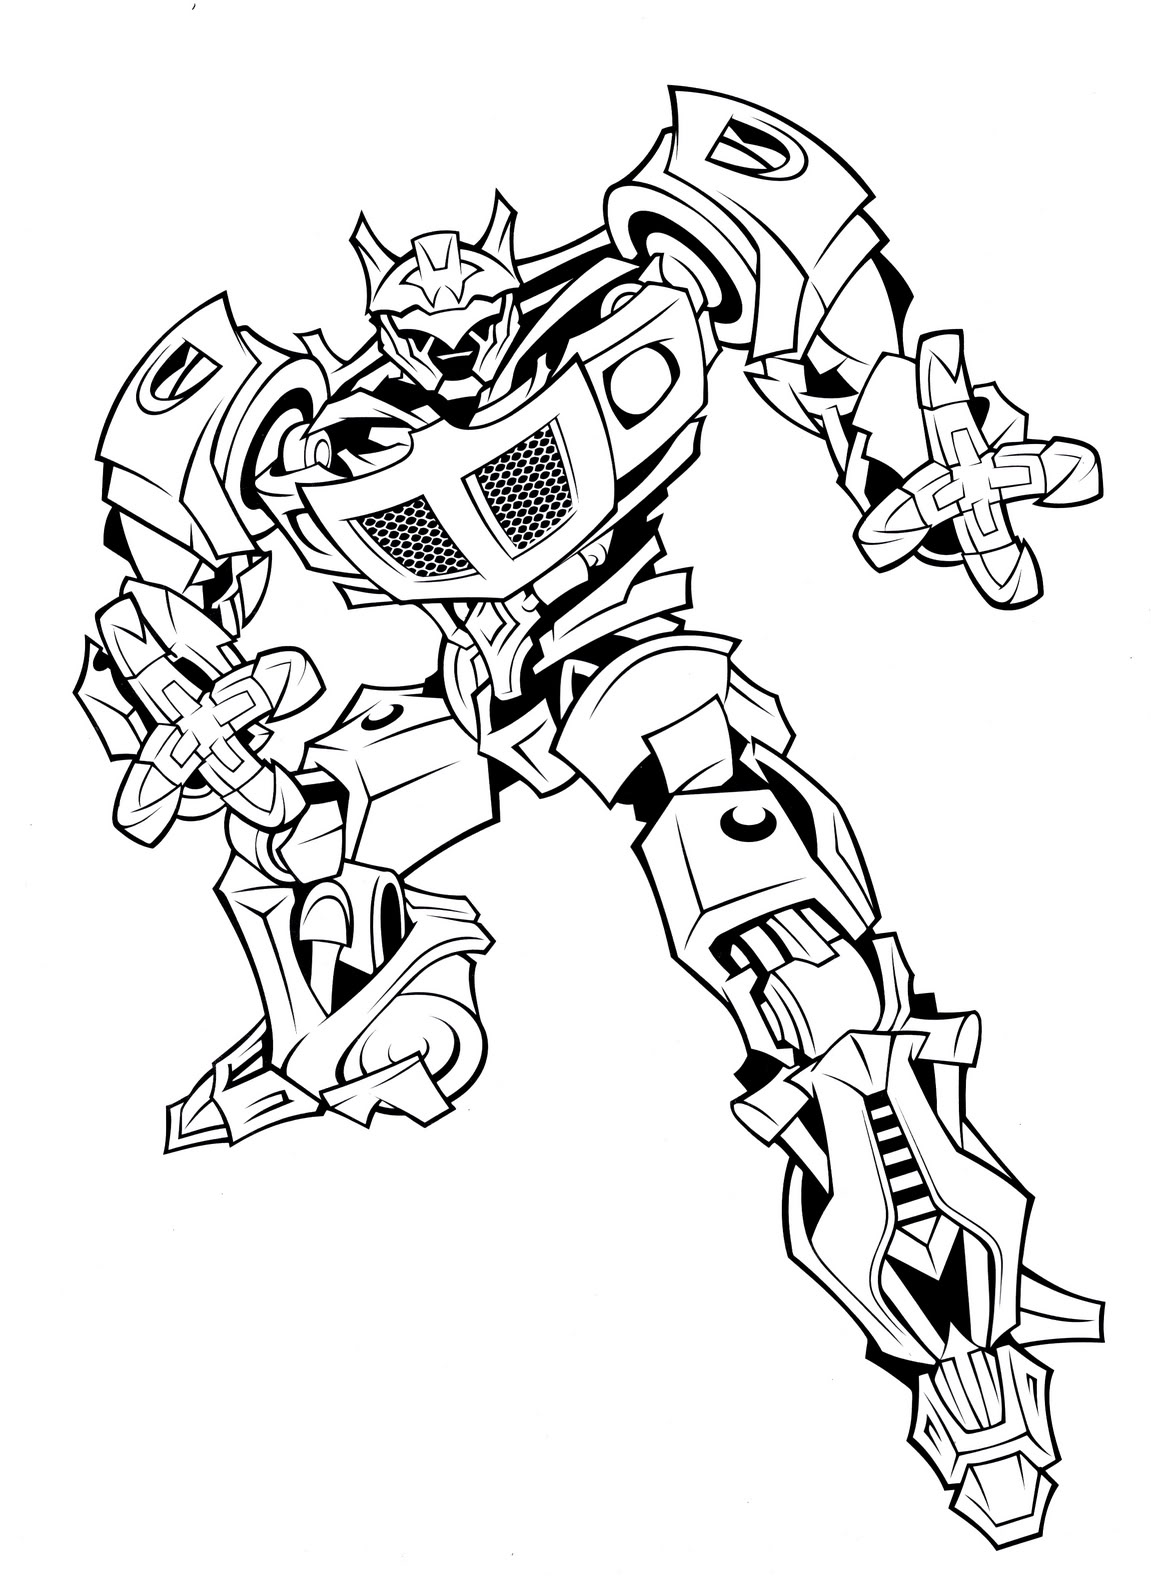 Printable coloring pages transformers - Free Printable Transformers Coloring Pages Download